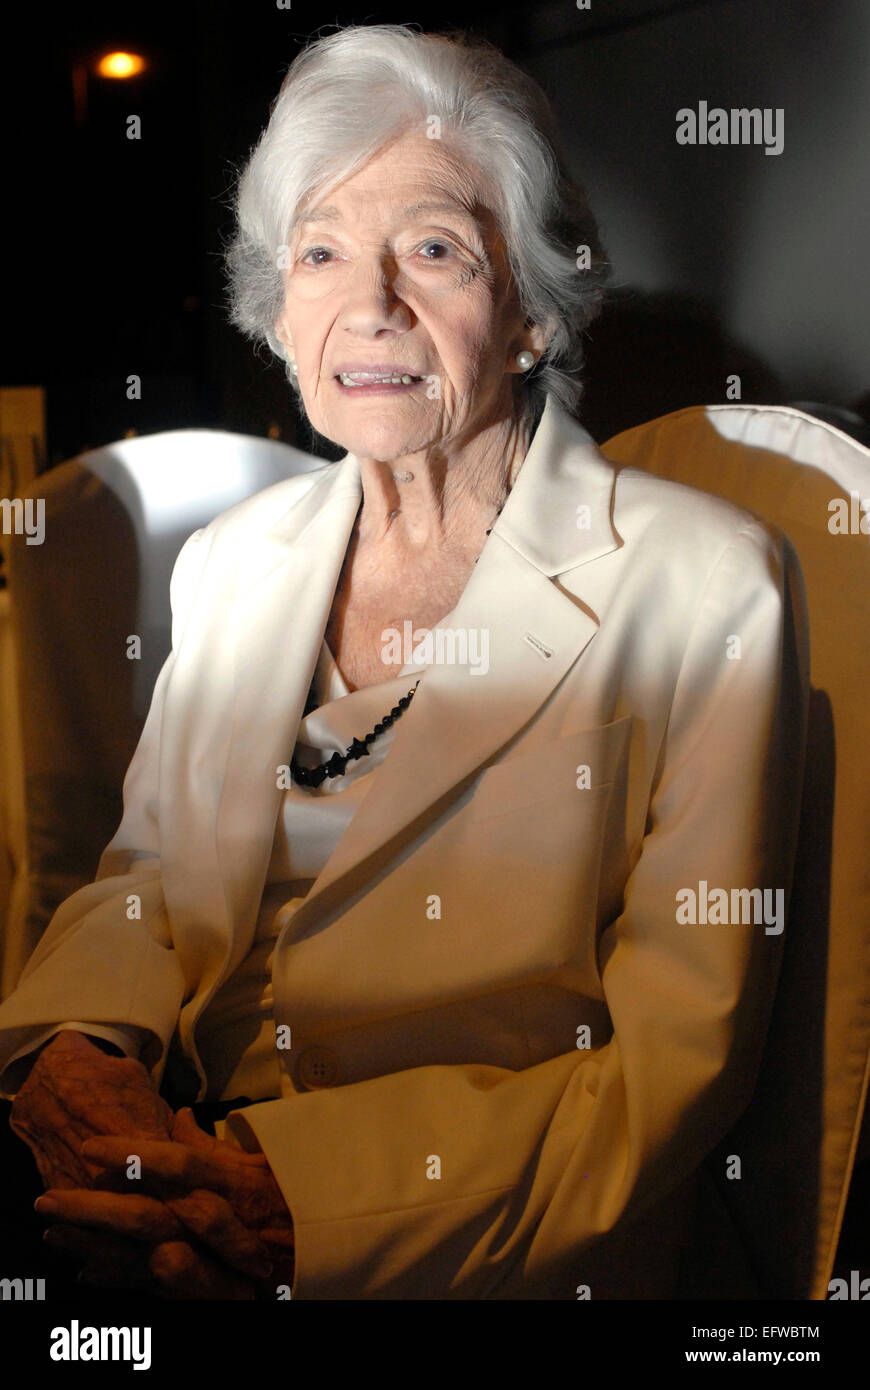 Discussion on this topic: Jane Bassett, ana-auther/